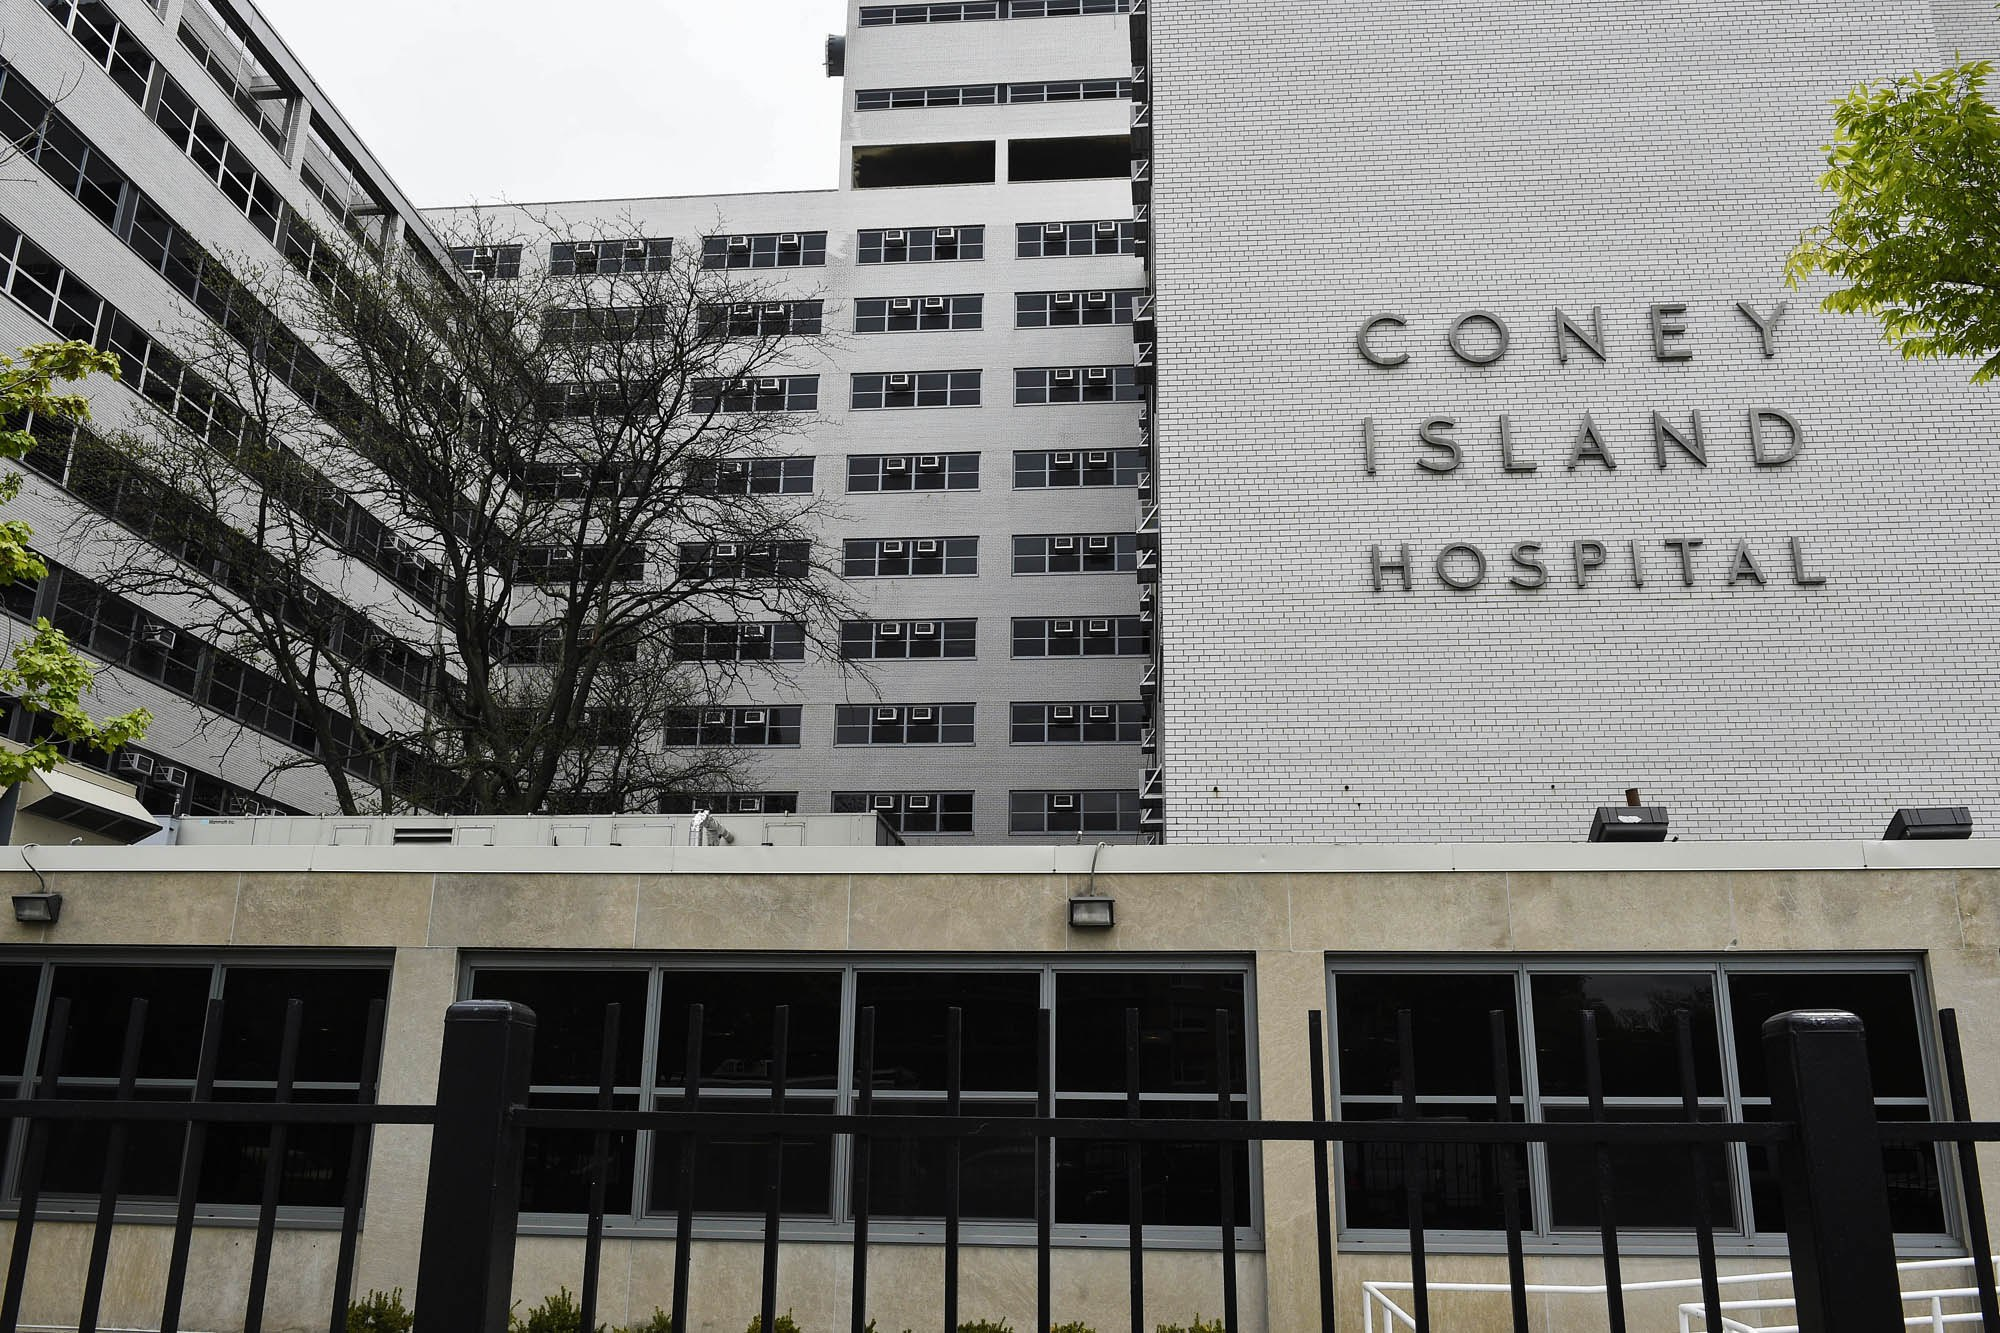 Coney Island Hospital - Mitigation Project